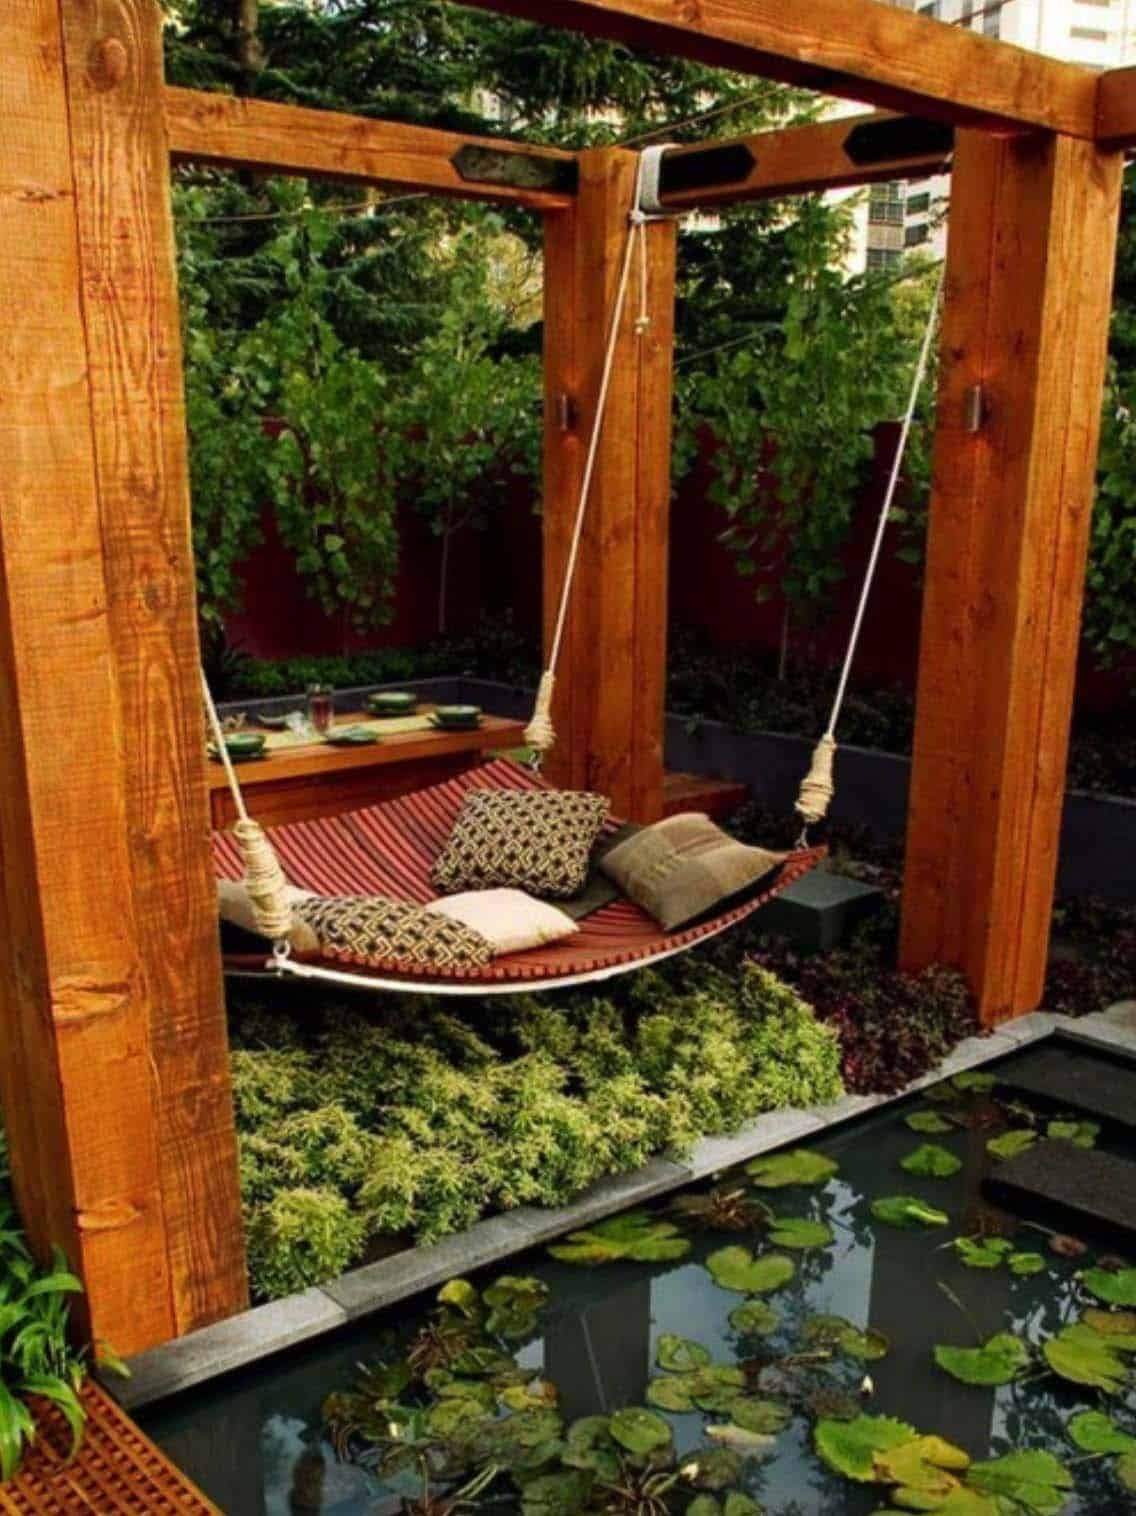 Heavenly Outdoor Hammock Ideas-16-1 Kindesign